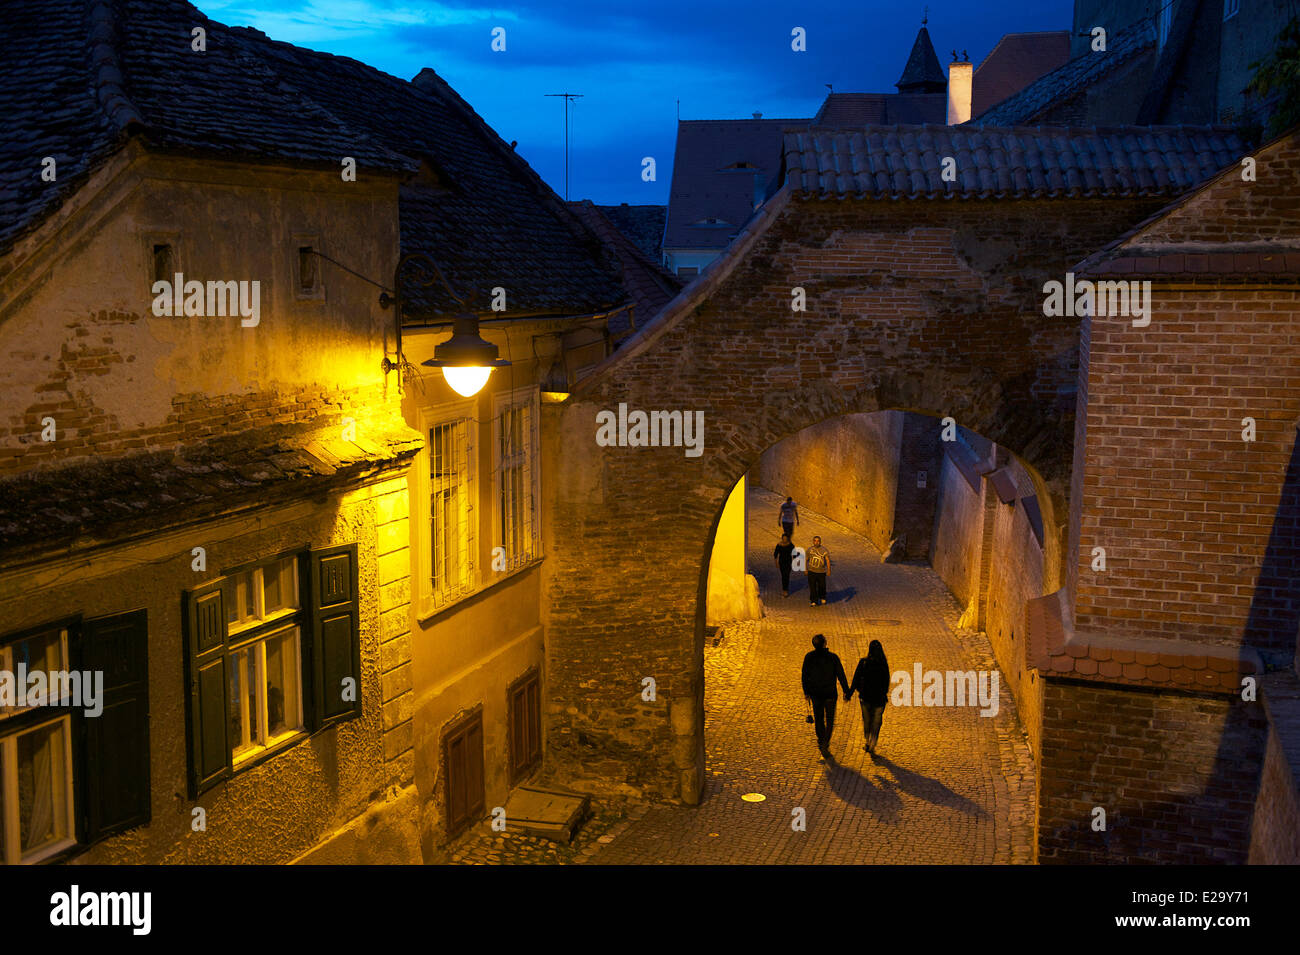 Romania, Transylvania, Carpathian Mountains, Sibiu, the old town - Stock Image